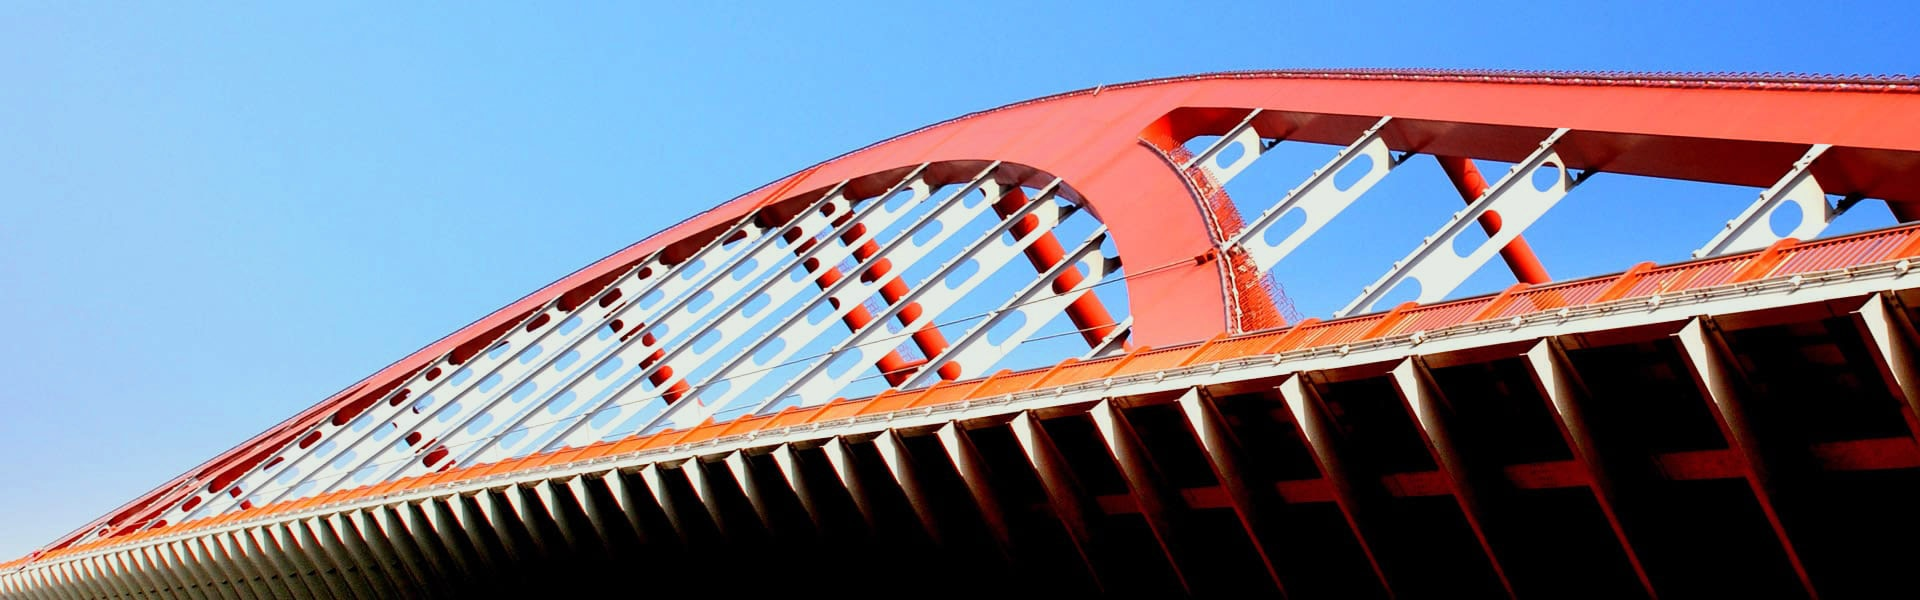 Energy and Infrastructure Coatings Sector – Bridge Coatings